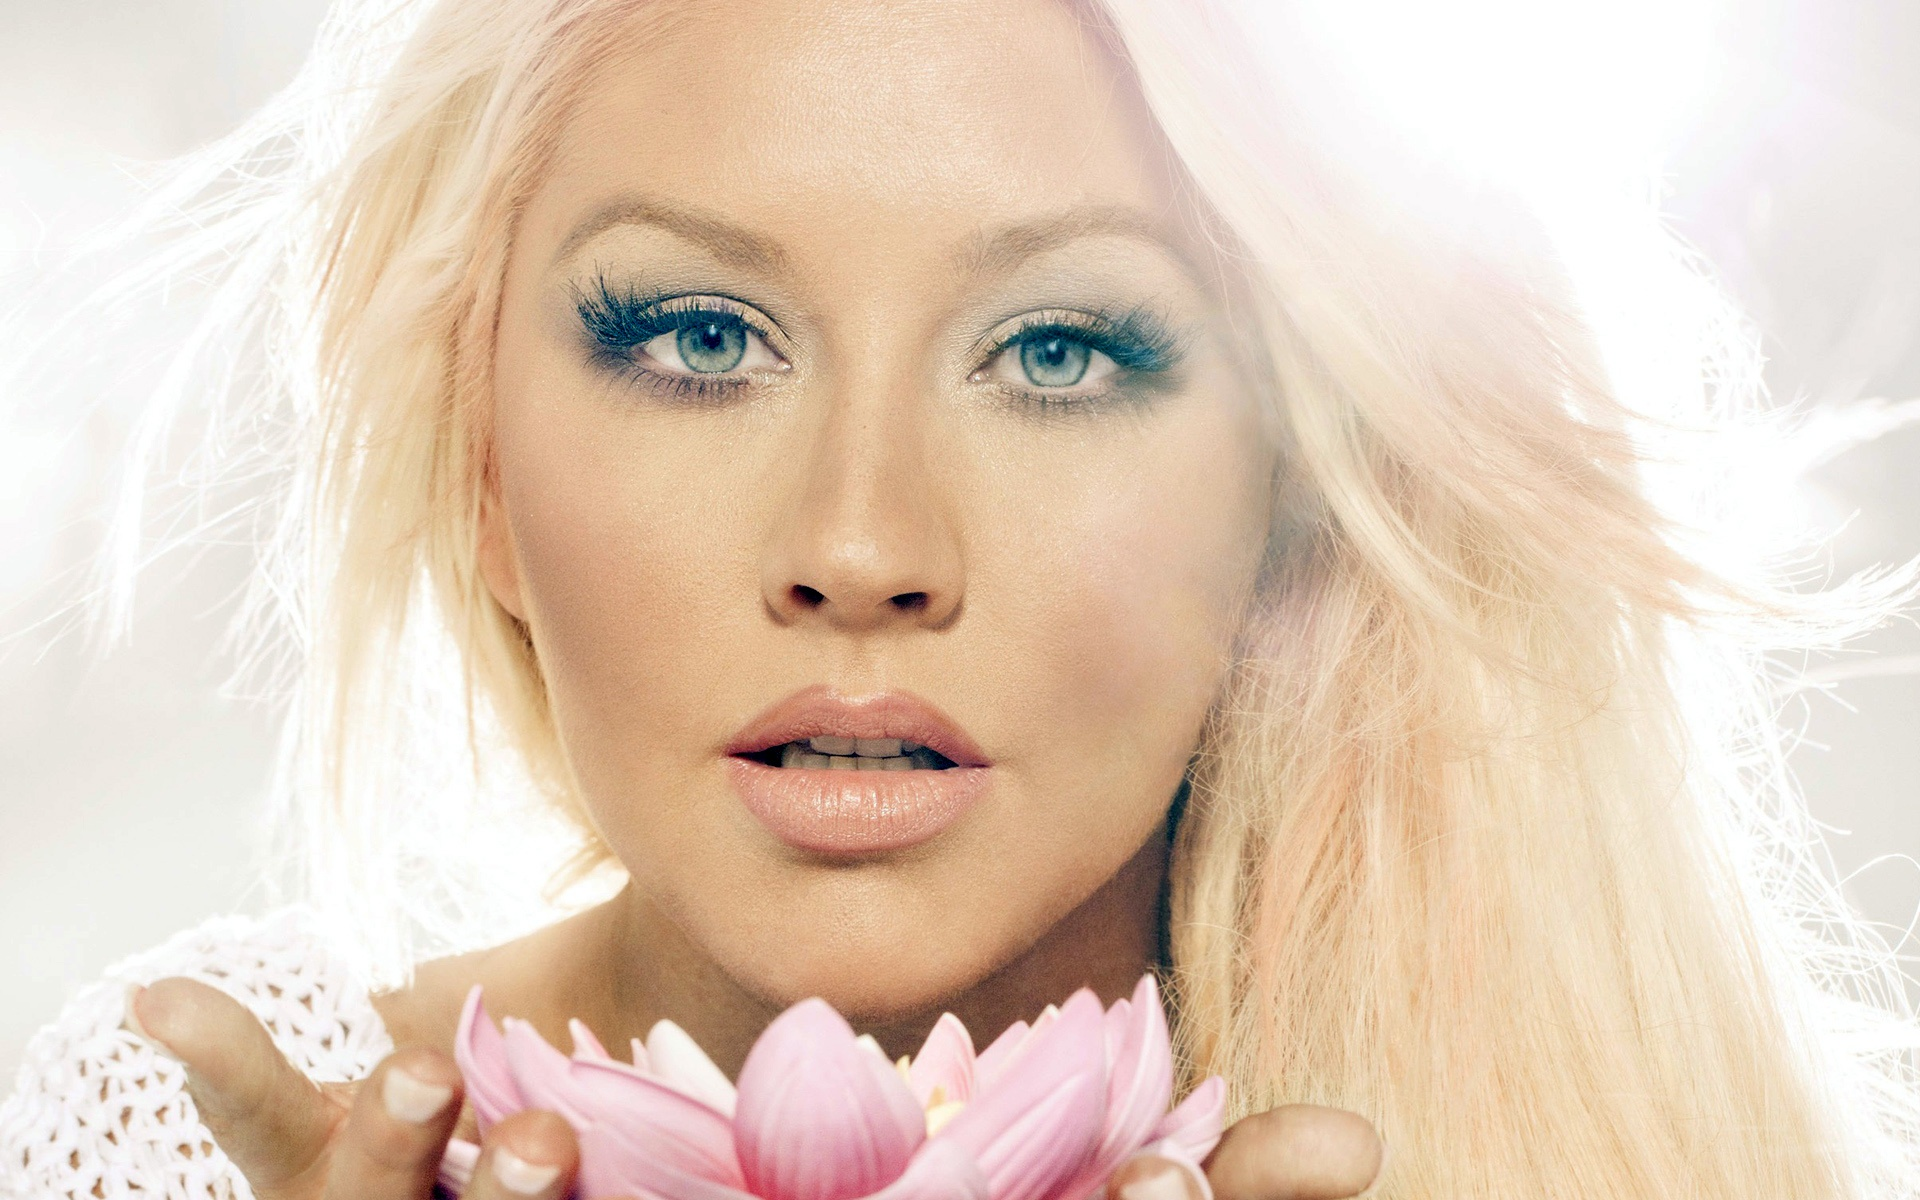 Download this Christina Aguilera Tiene Nuevo Single Let There Love picture